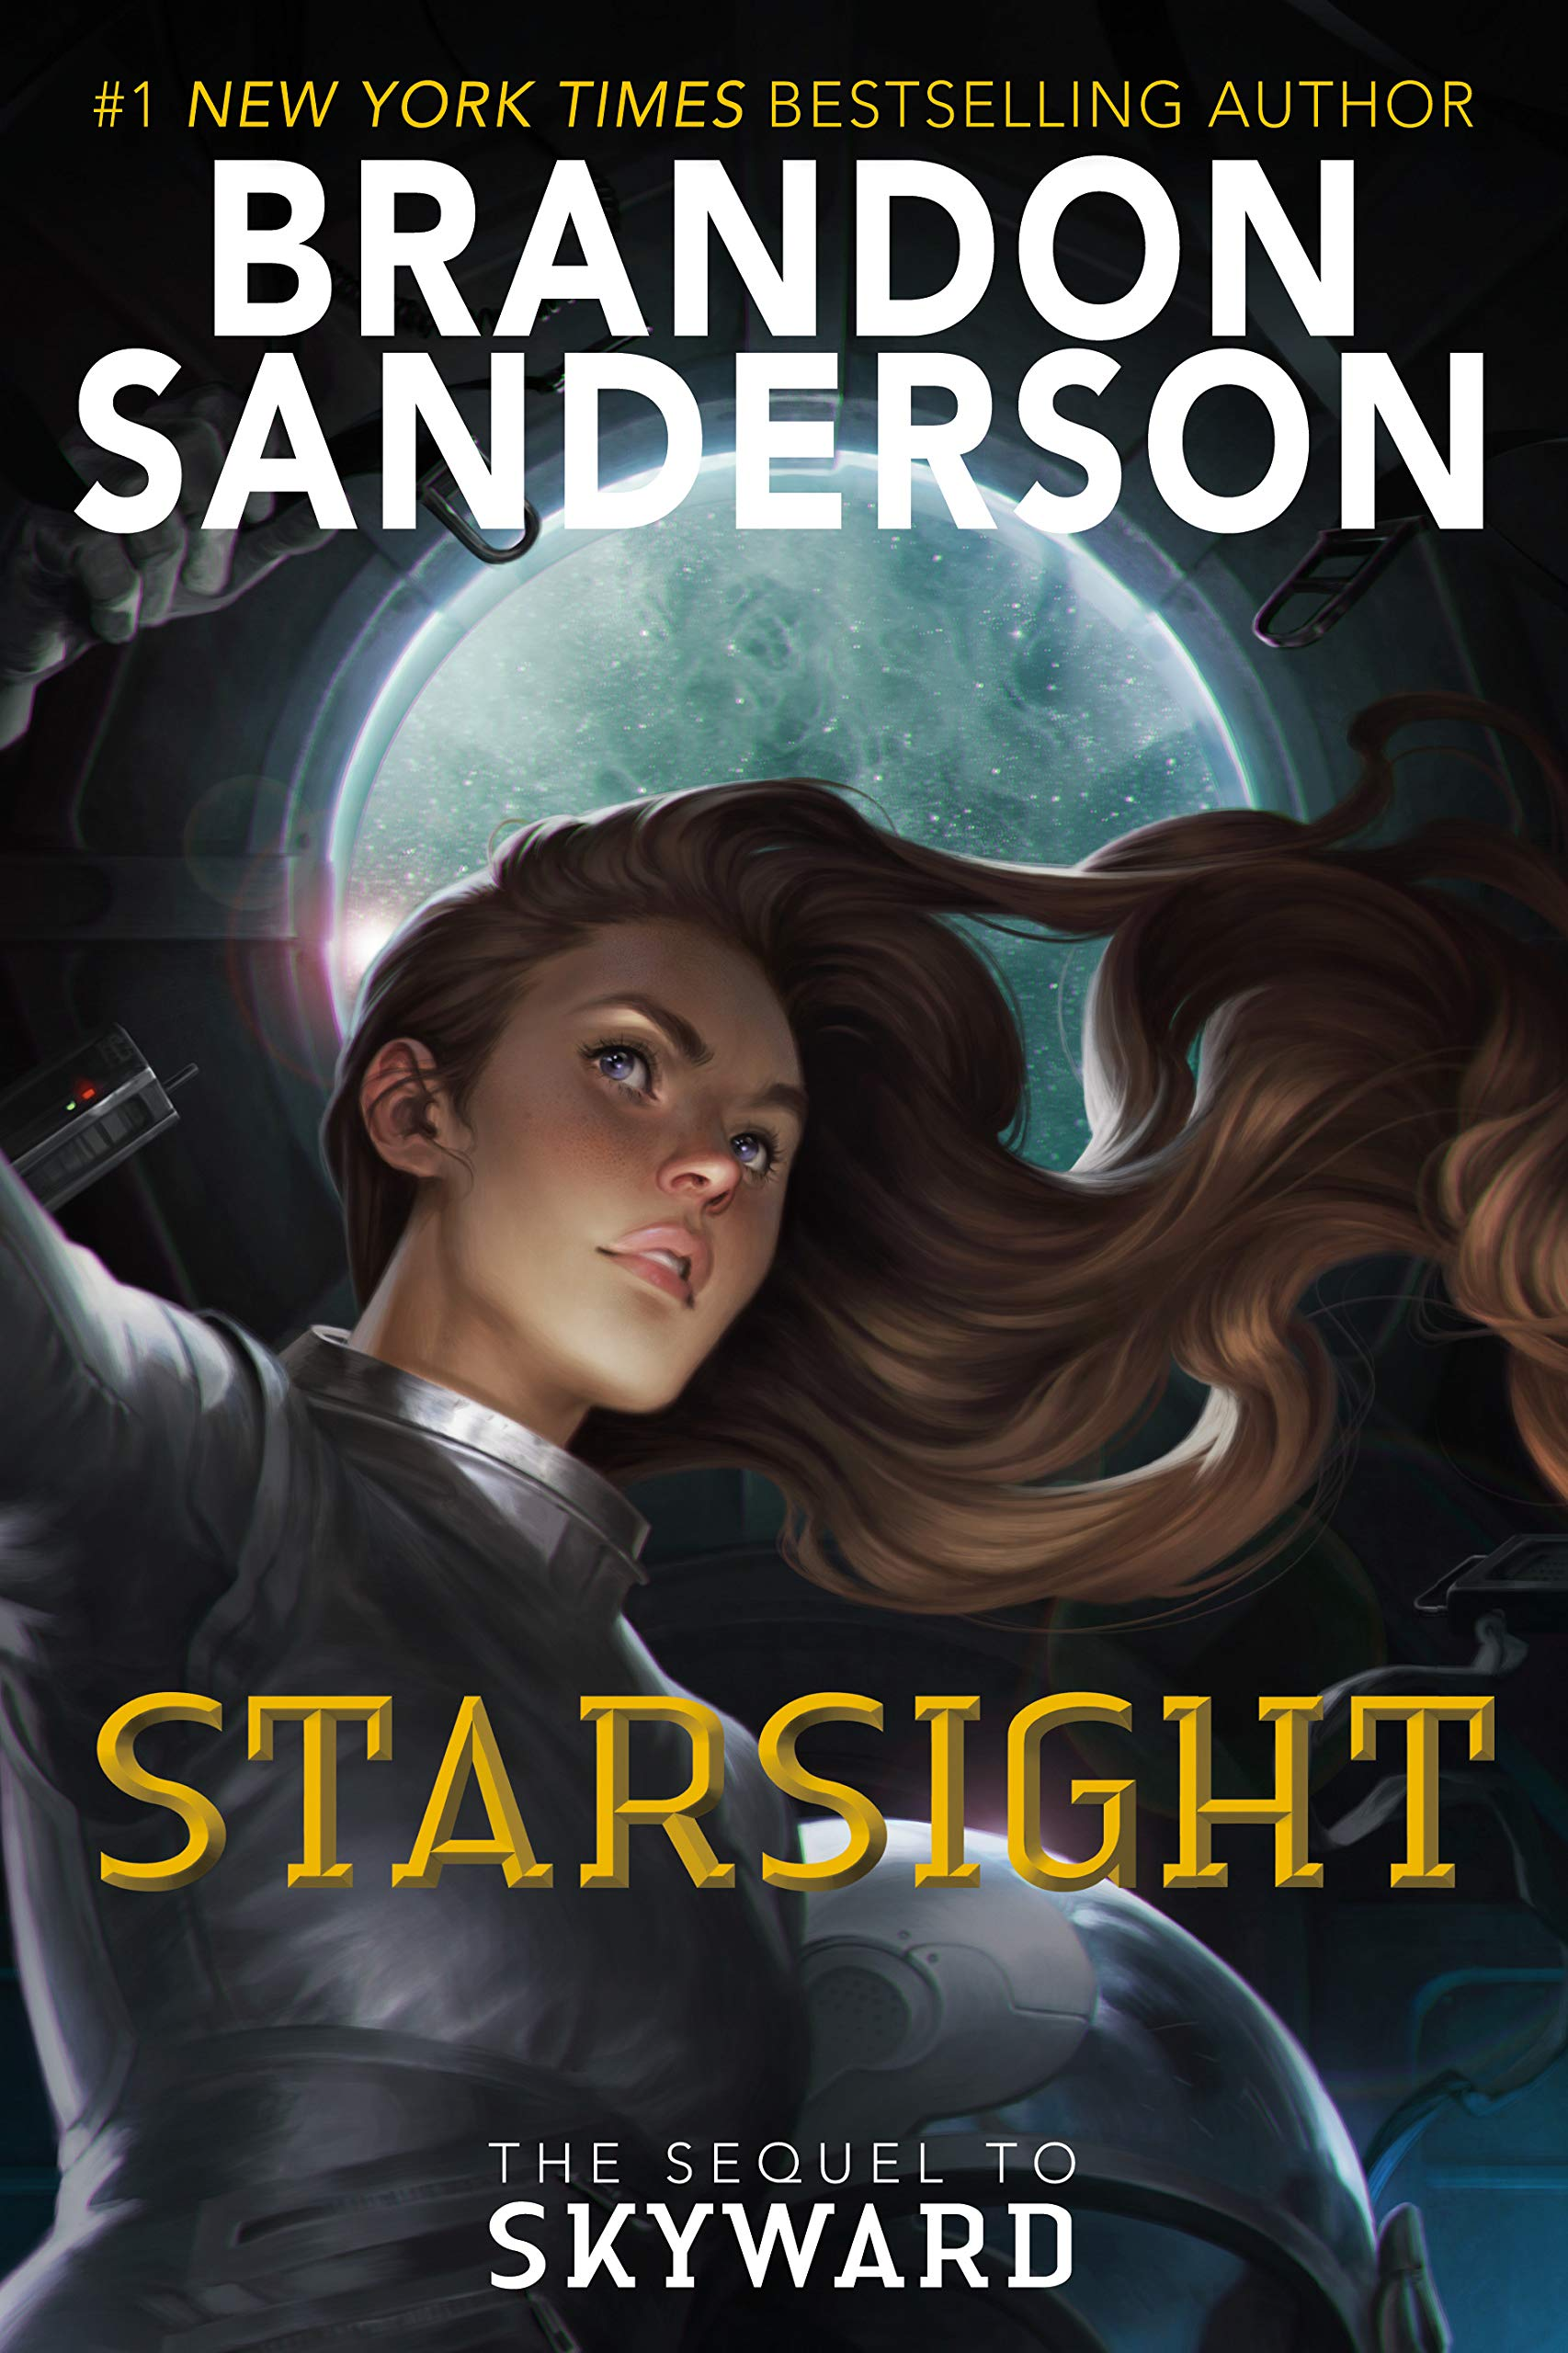 Amazon.com: Starsight (Skyward) (9780399555817): Sanderson ...